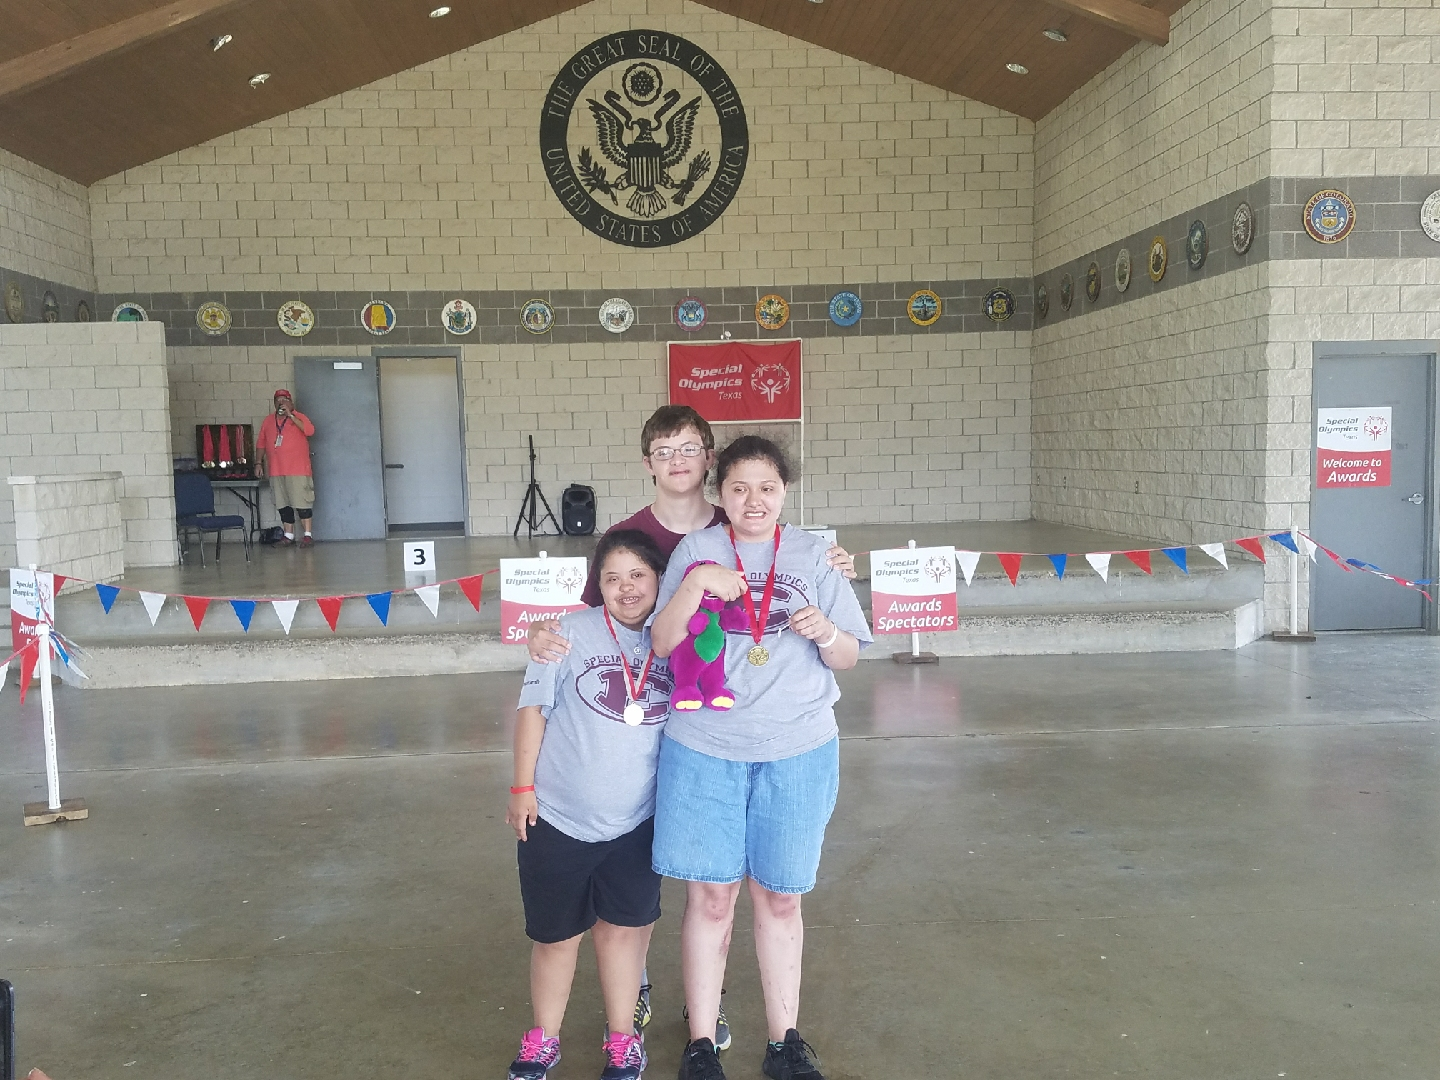 Special Olympics Compete in College Station